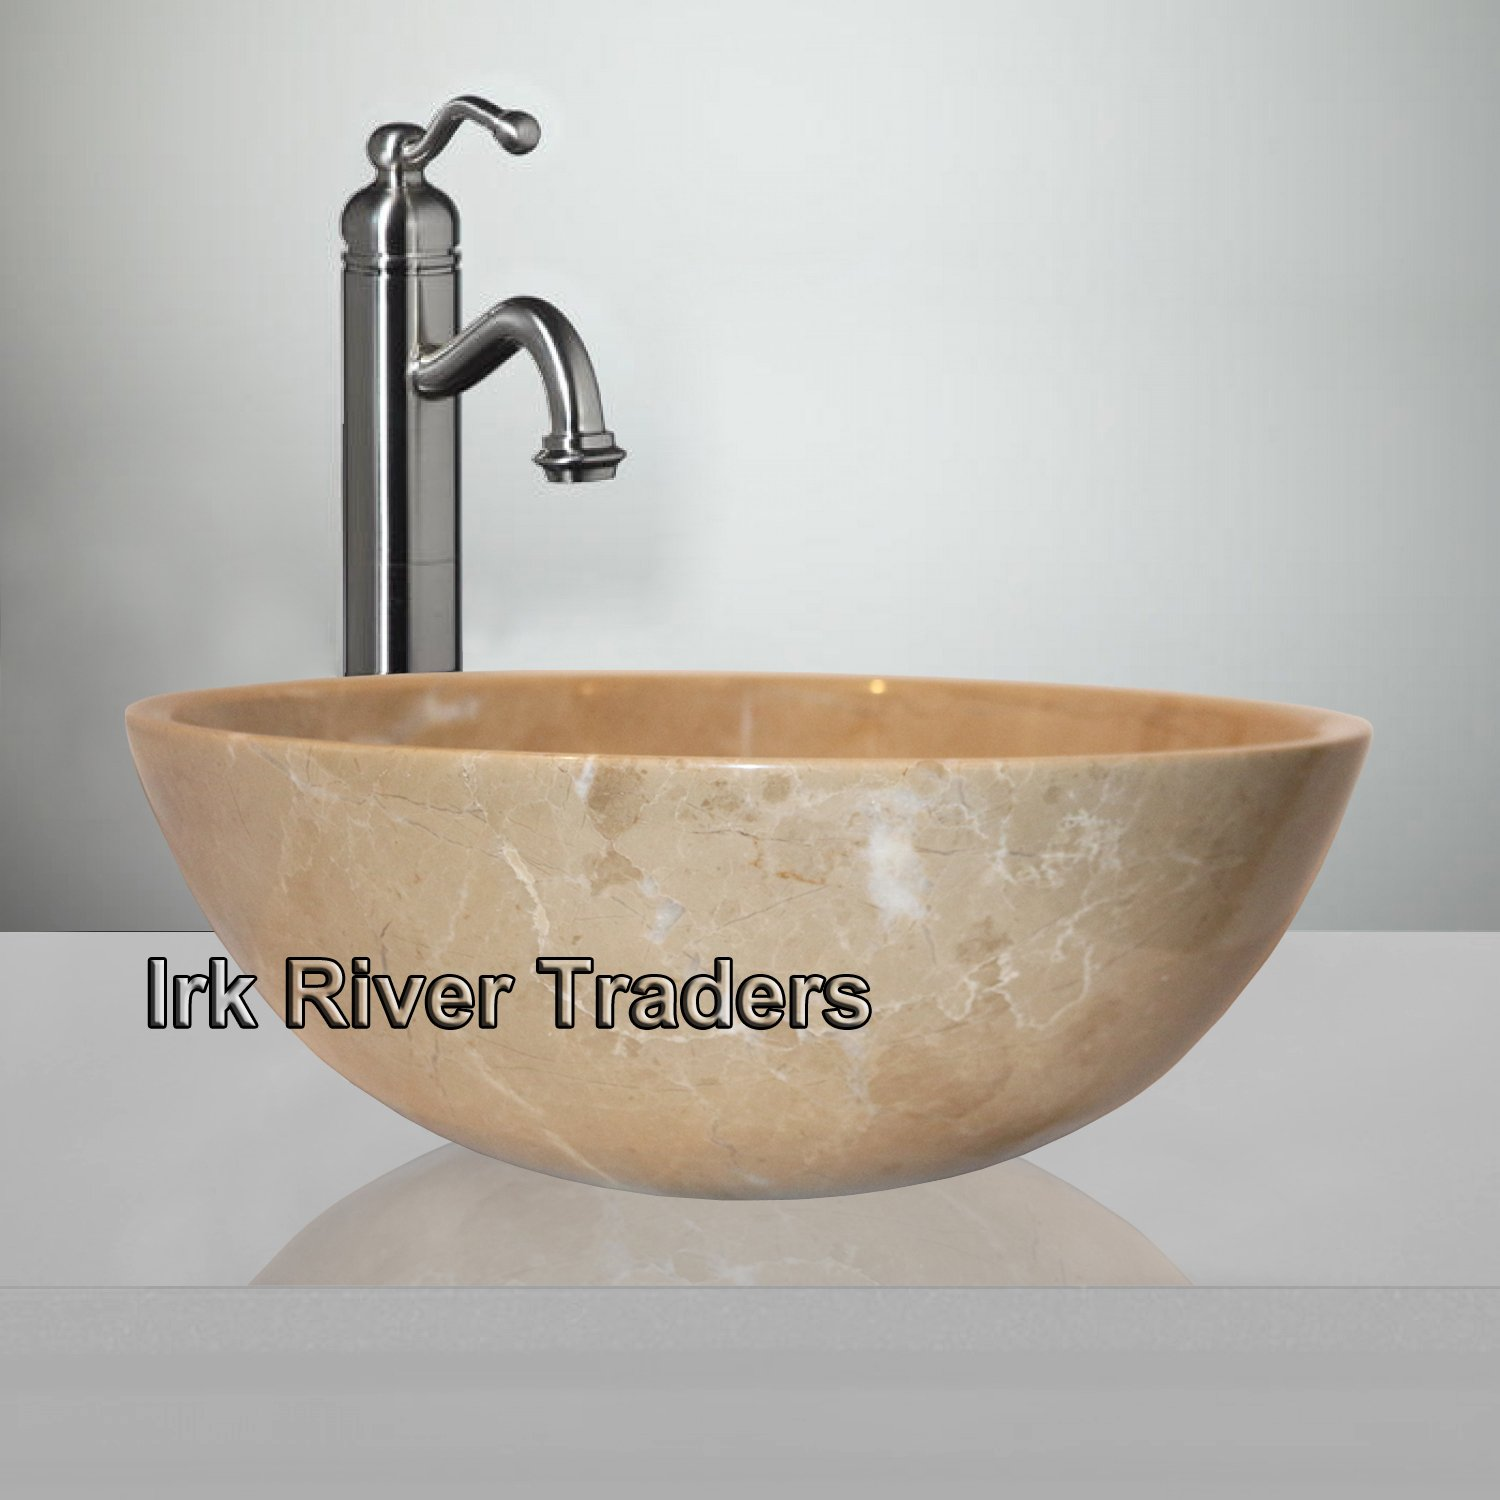 Belgravia Marble Natural Marble Stone Bathroom Basin Sink Small Cloakroom Counter Top Vessel Vanity Wash Bowl Bath Countertop Sink Deep Round (12